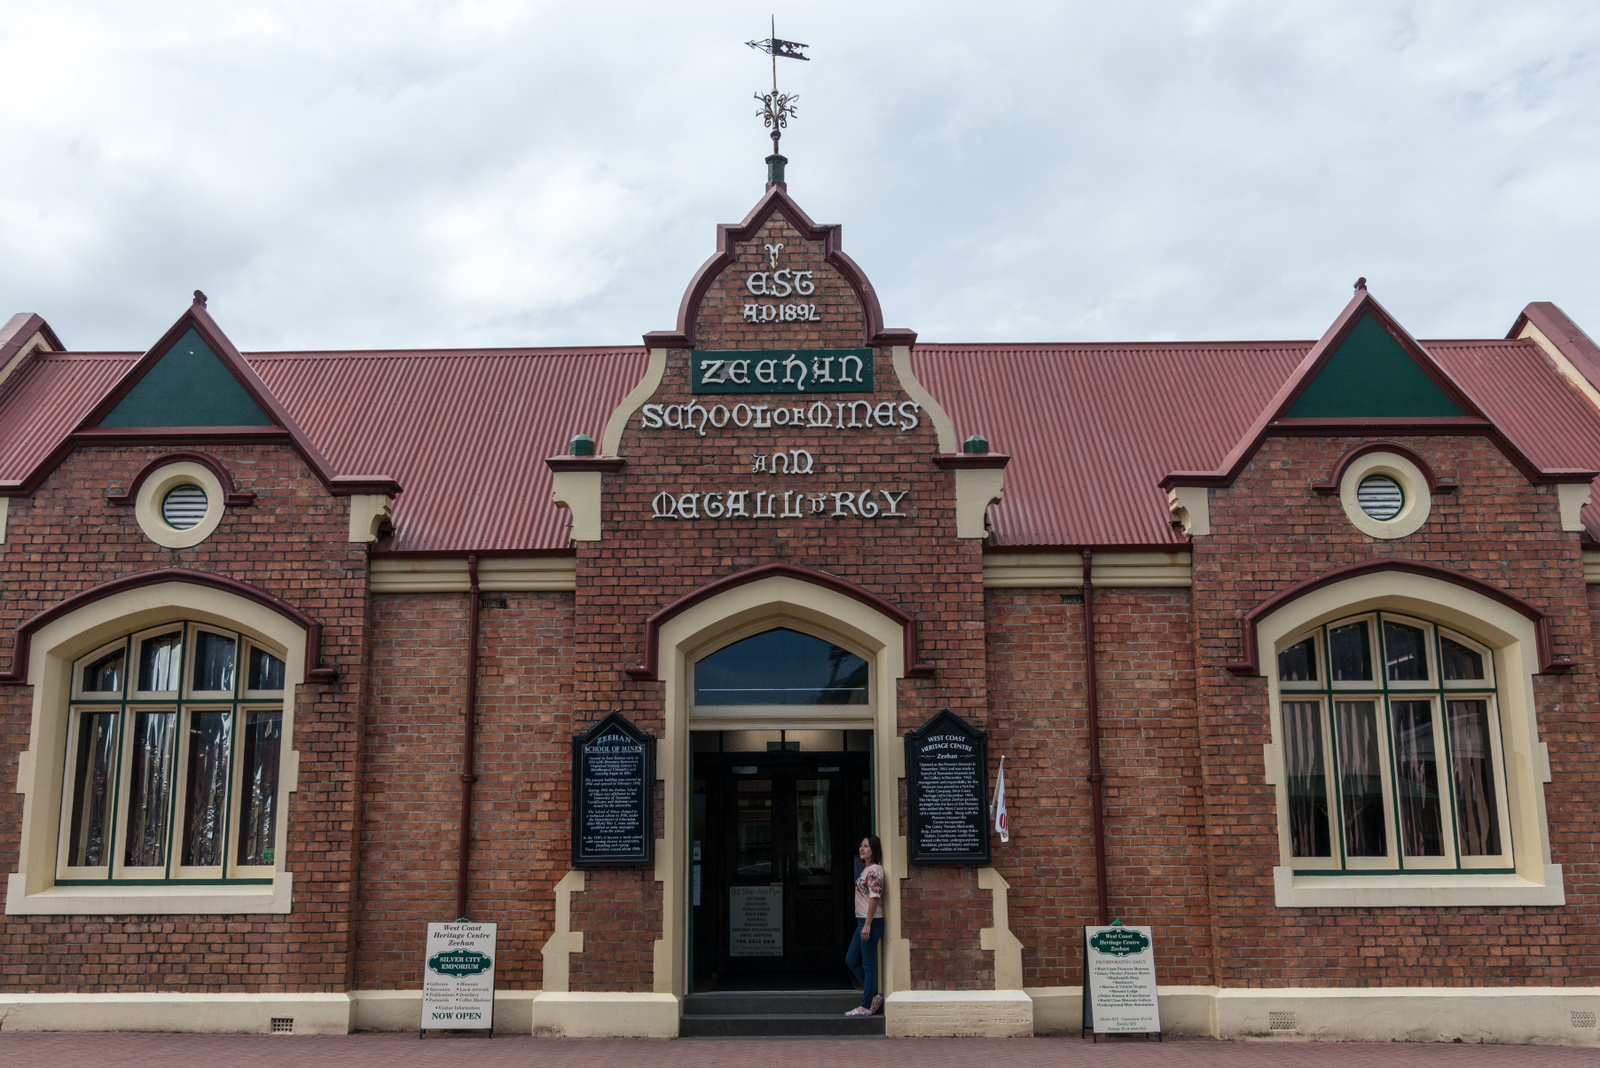 The West Coast Heritage Centre at Zeehan